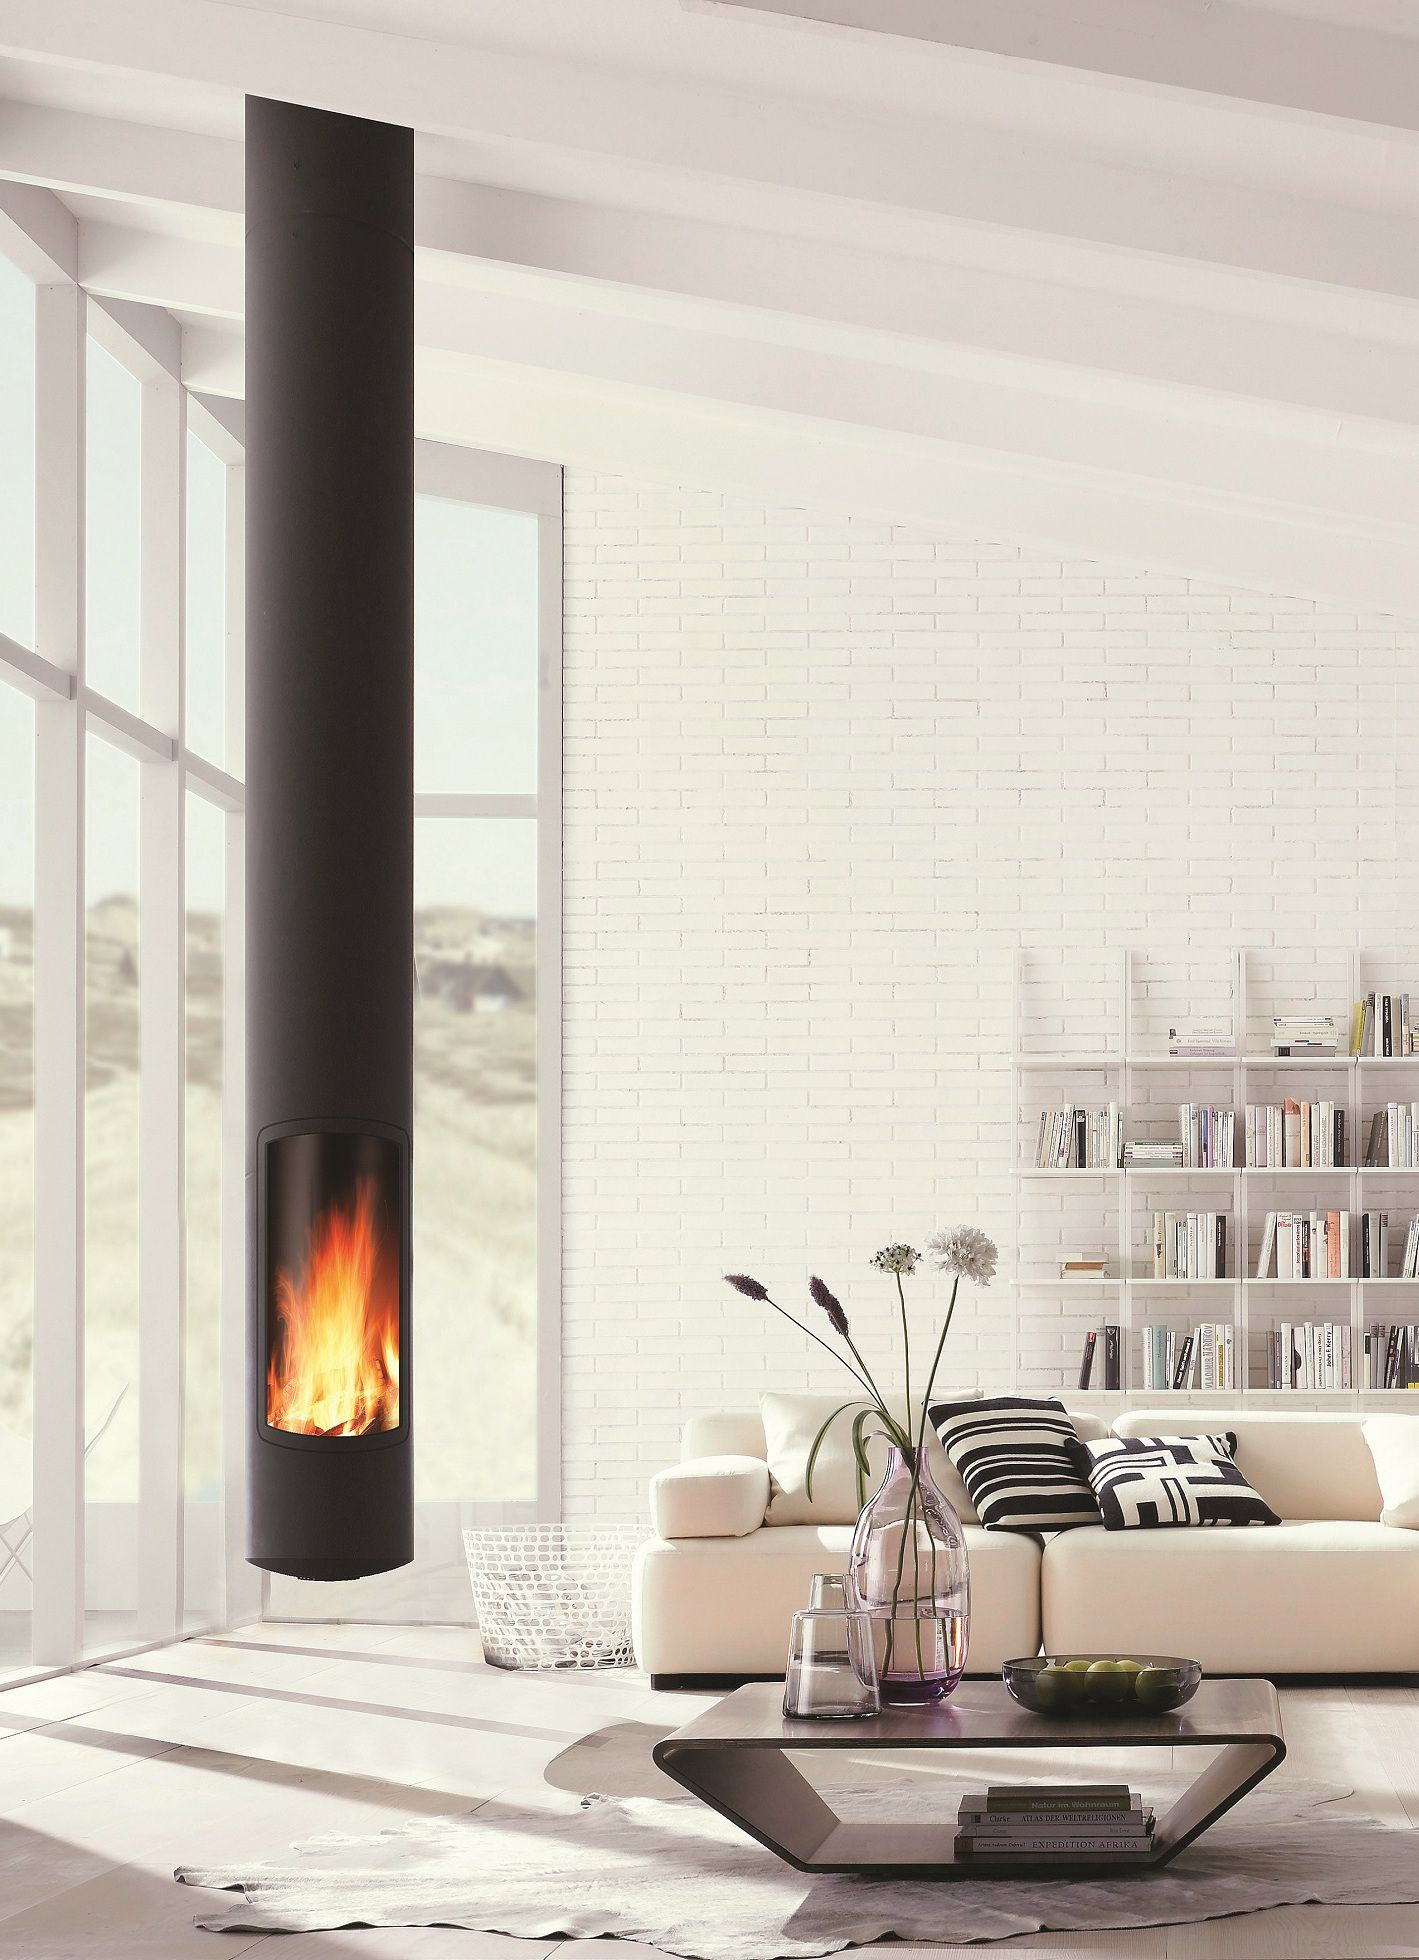 Cheminees Salas Minimun Volume Excellent Heat Performance Slimfocus By Focus